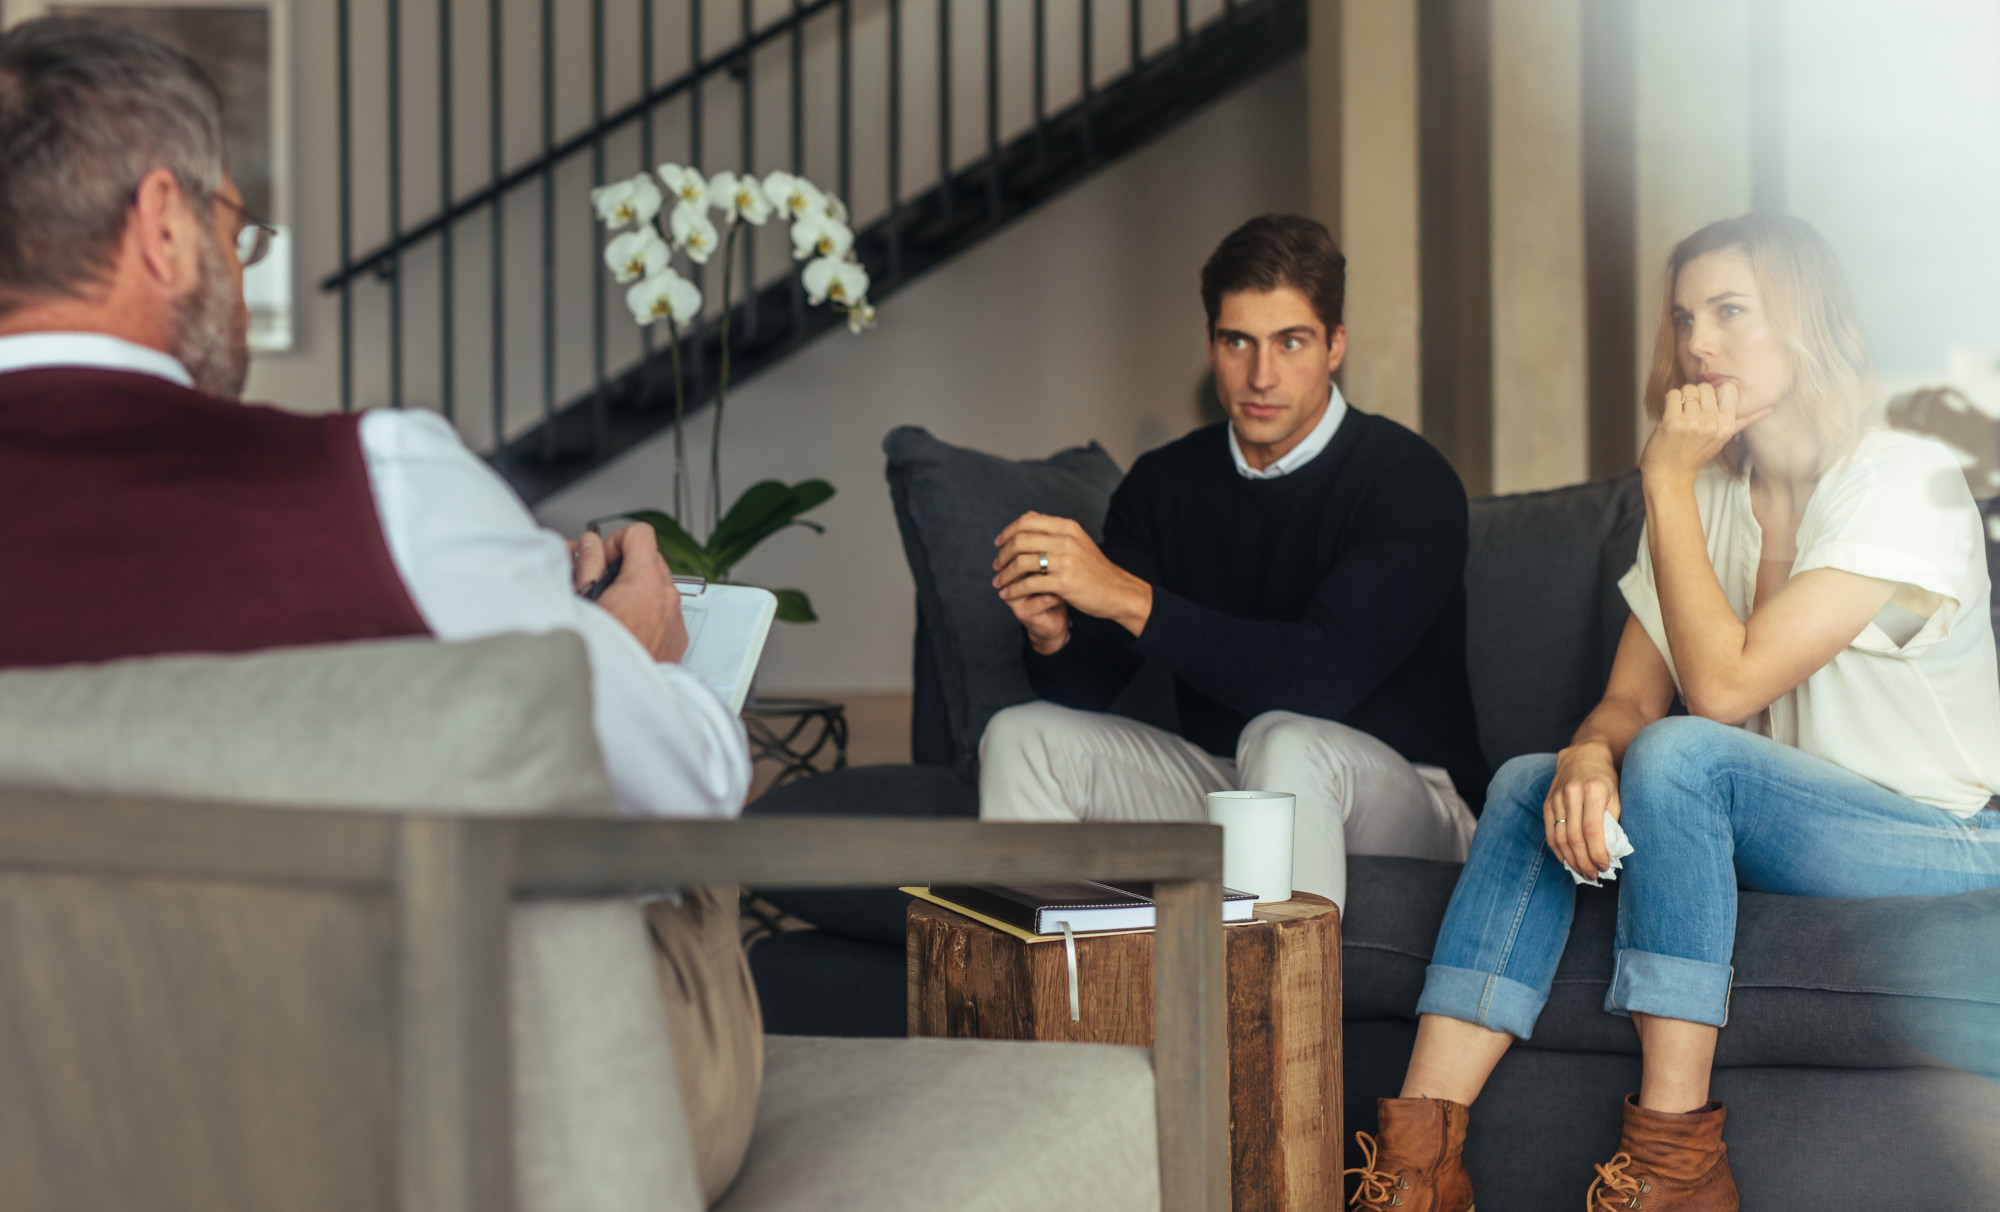 6 Simple but Effective Couples Therapy Exercises You Can Practice at Home